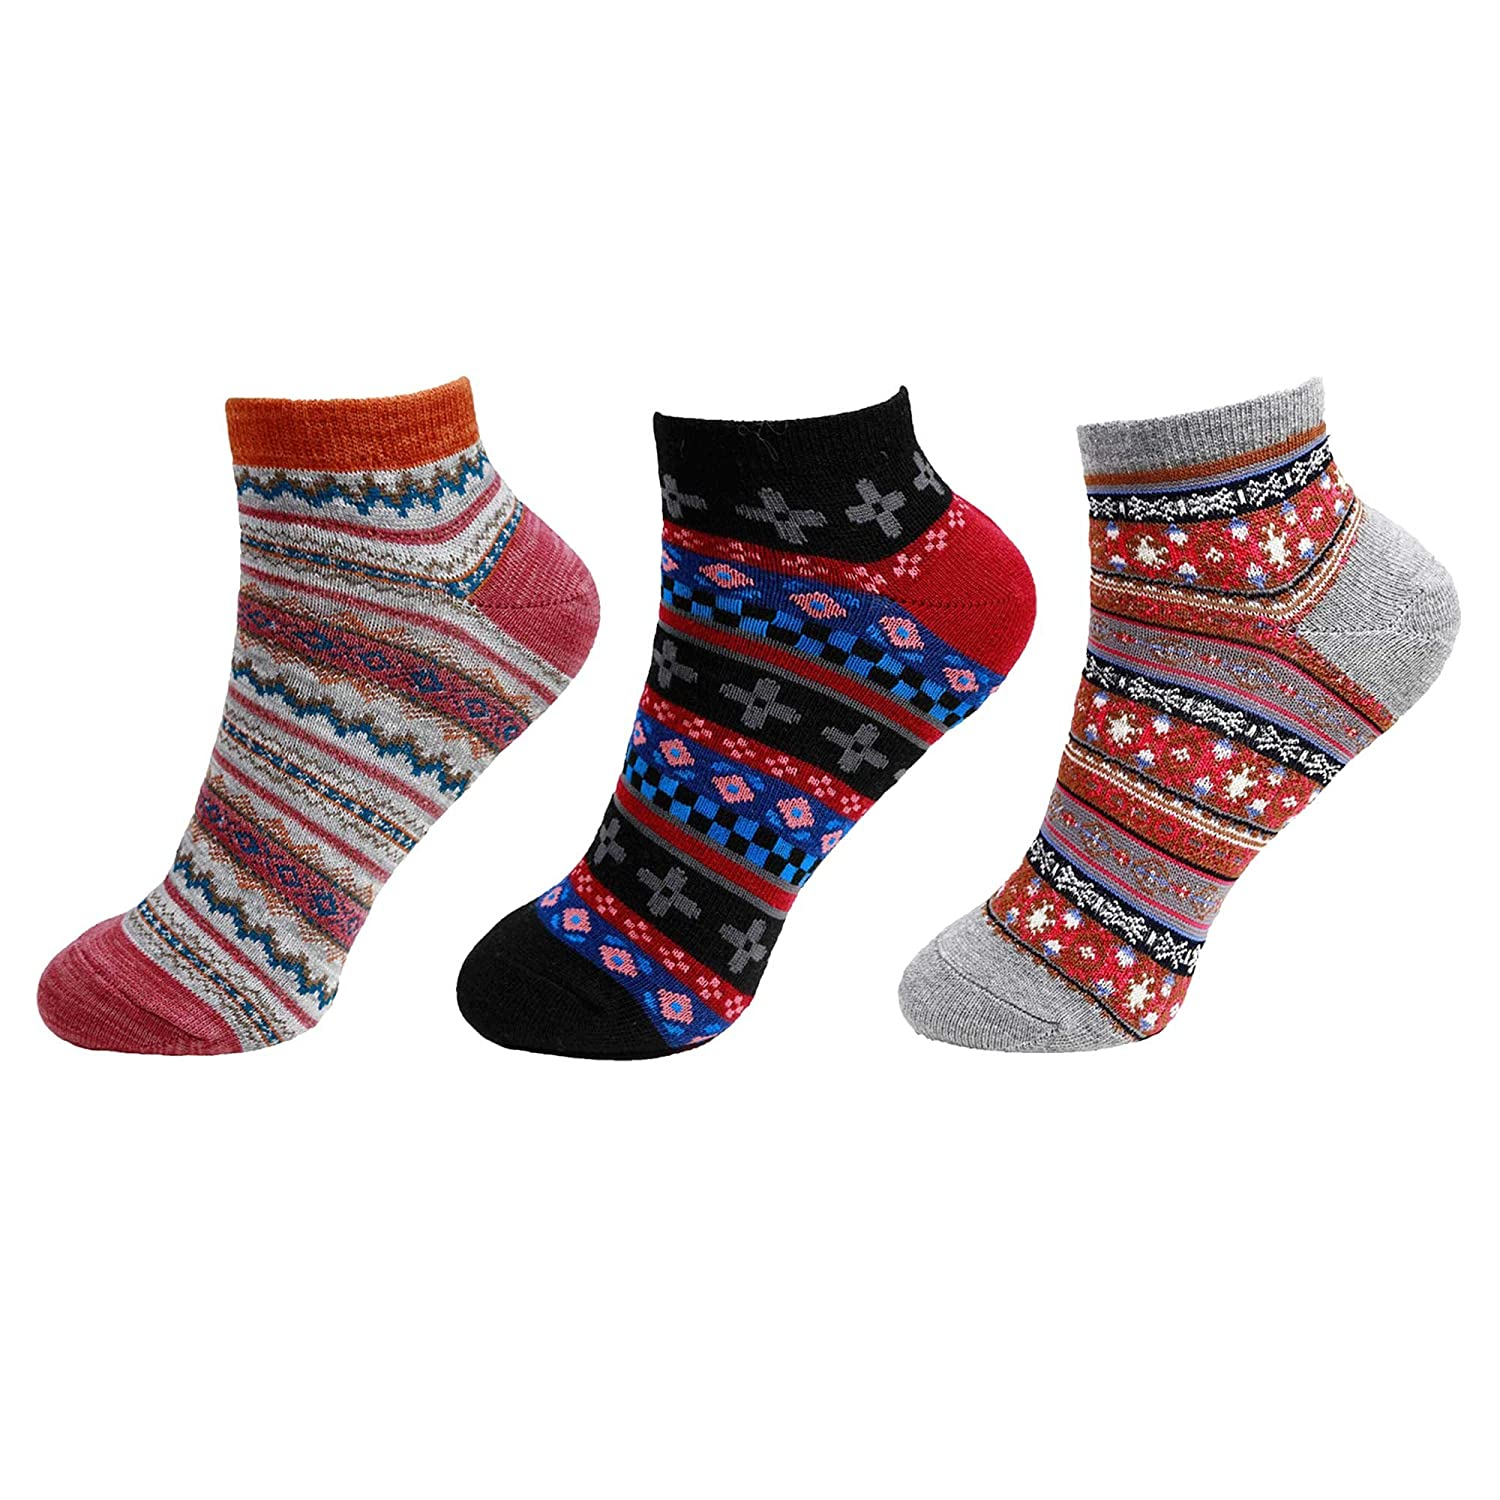 7e62a2b74eb1 Women's Vintage Style Knitted Colorful Cotton Anklet Socks -3A, Size M/L - 3  prs at Amazon Women's Clothing store: